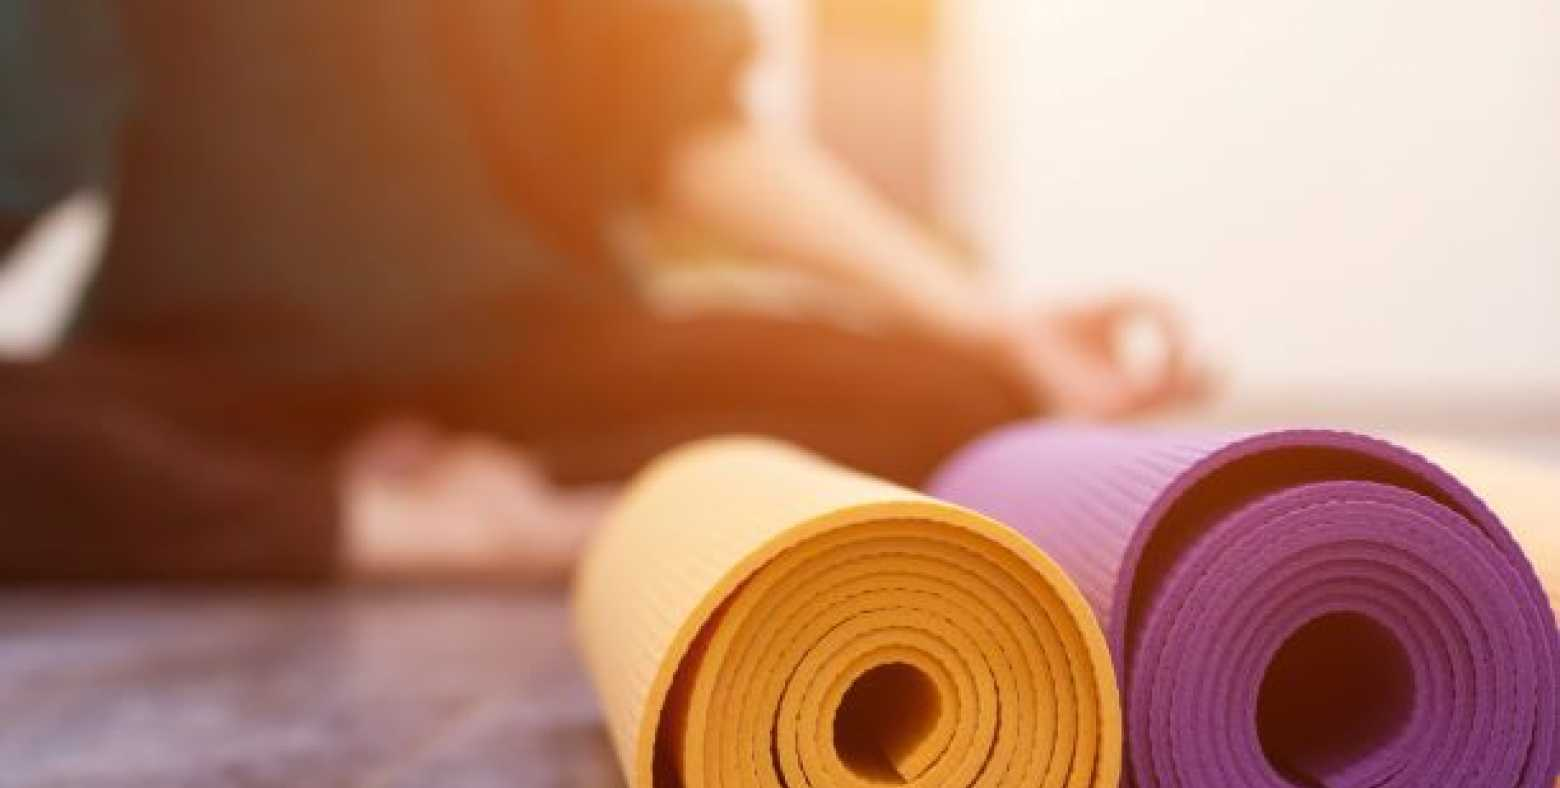 Two rolled yoga mats